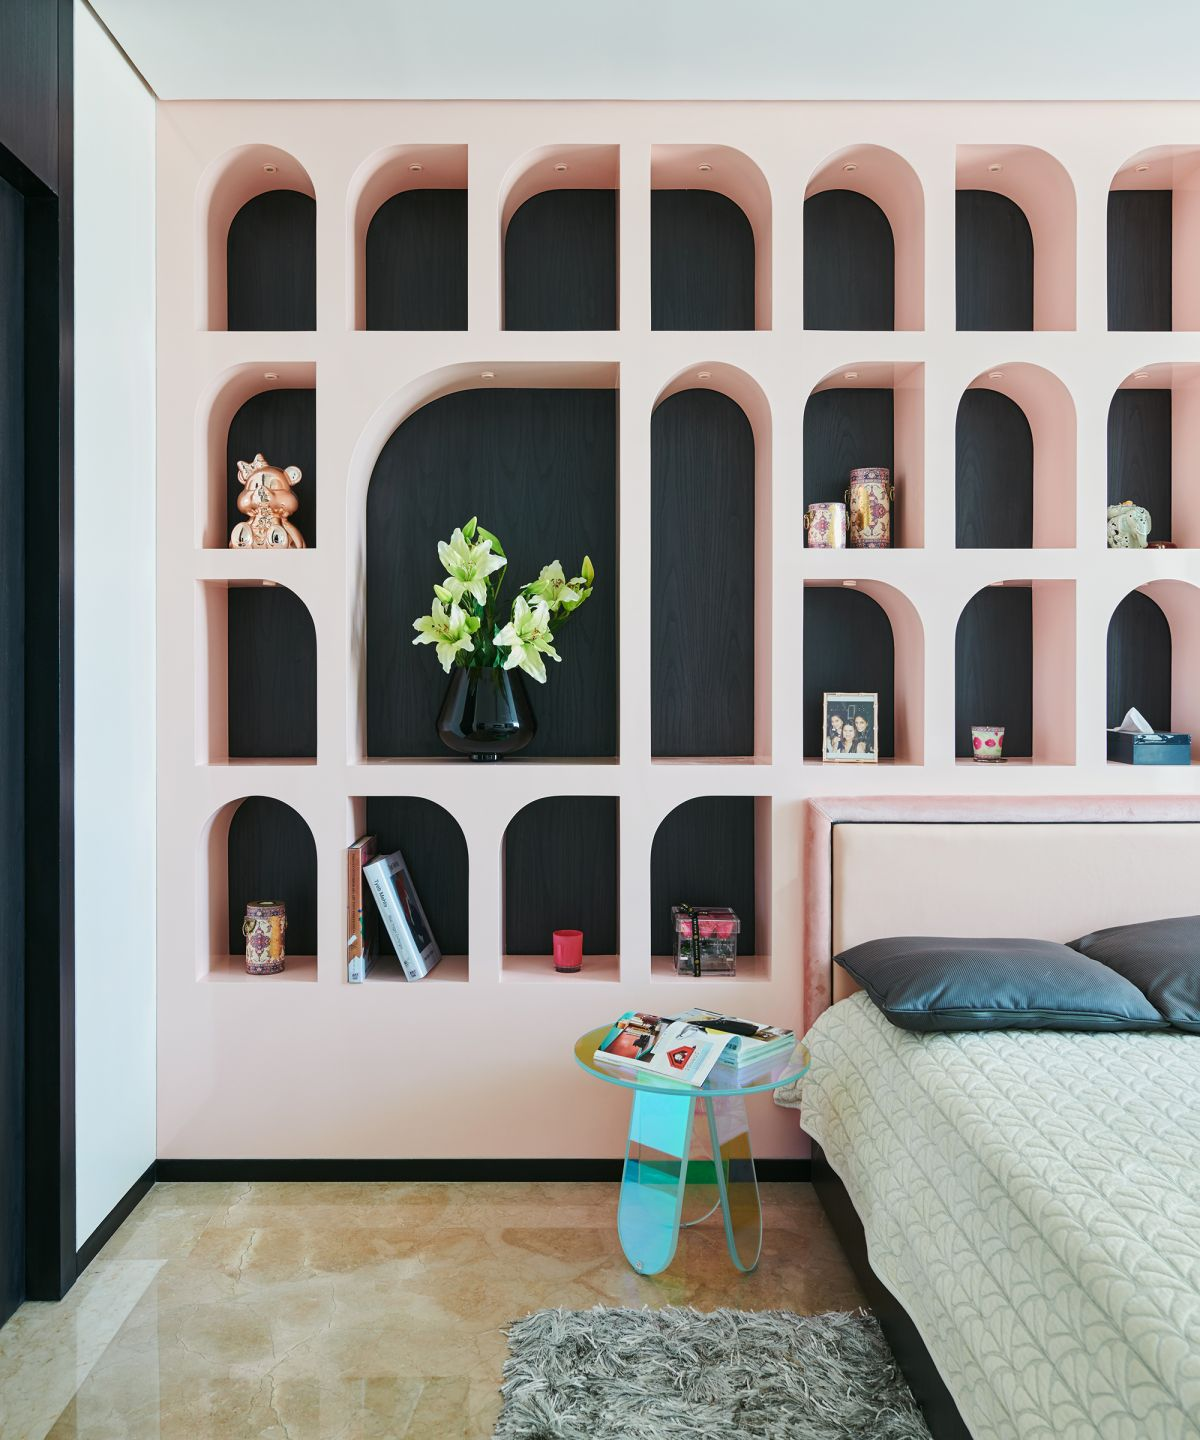 Bedroom shelf ideas – 15 stylish ways to use shelving for display and storage